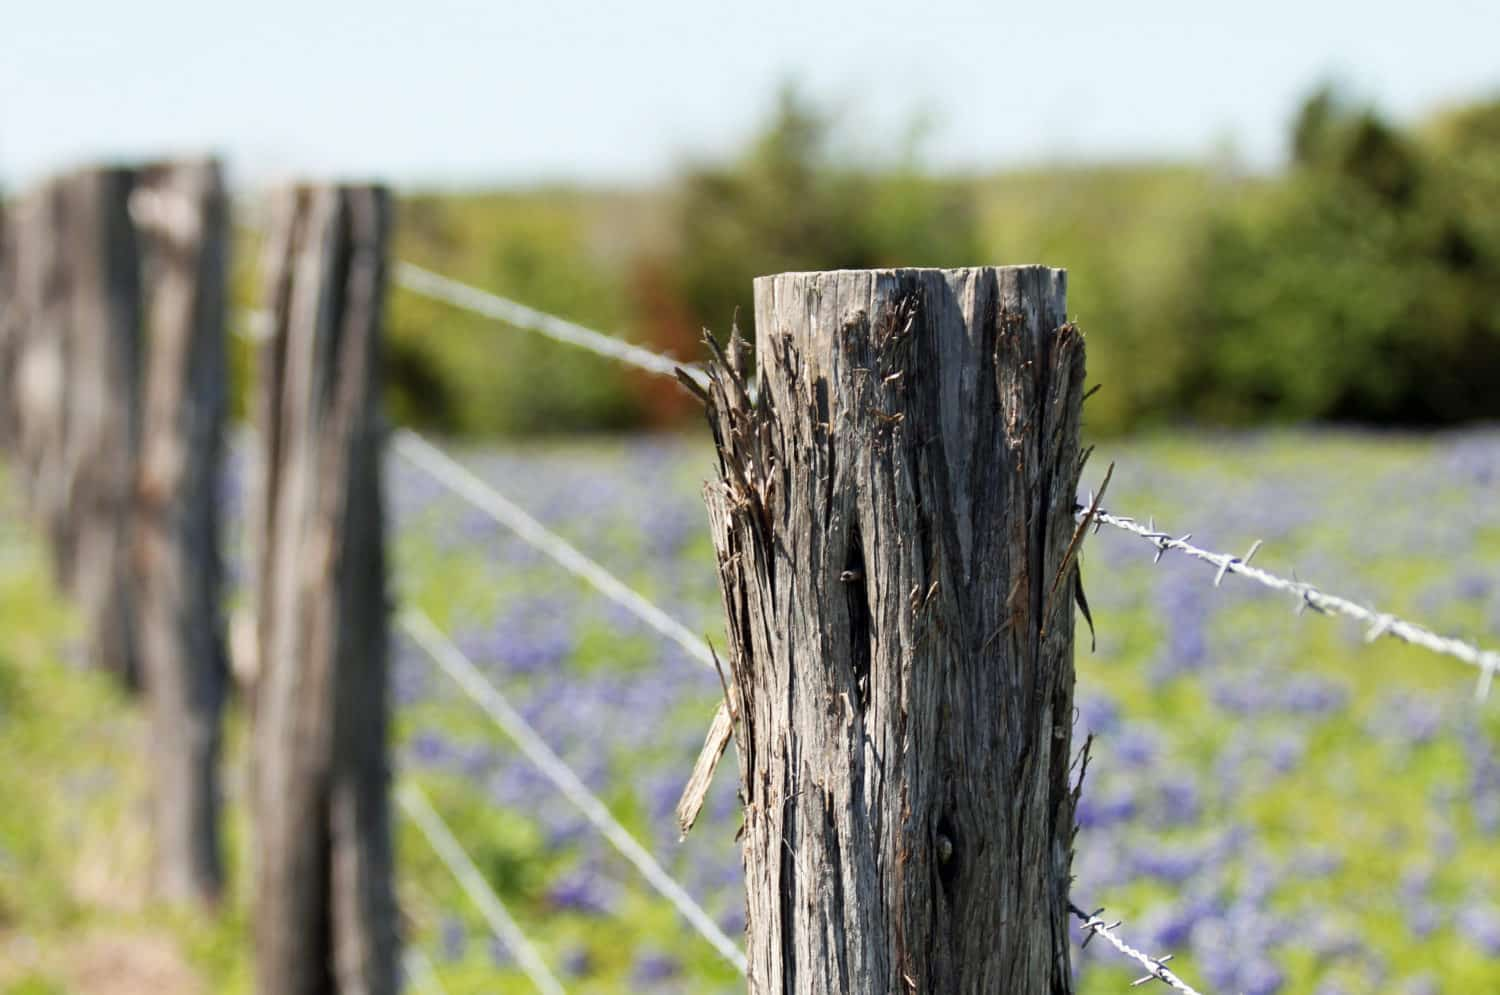 A fence and bluebonnets in The Texas Hill Country region.